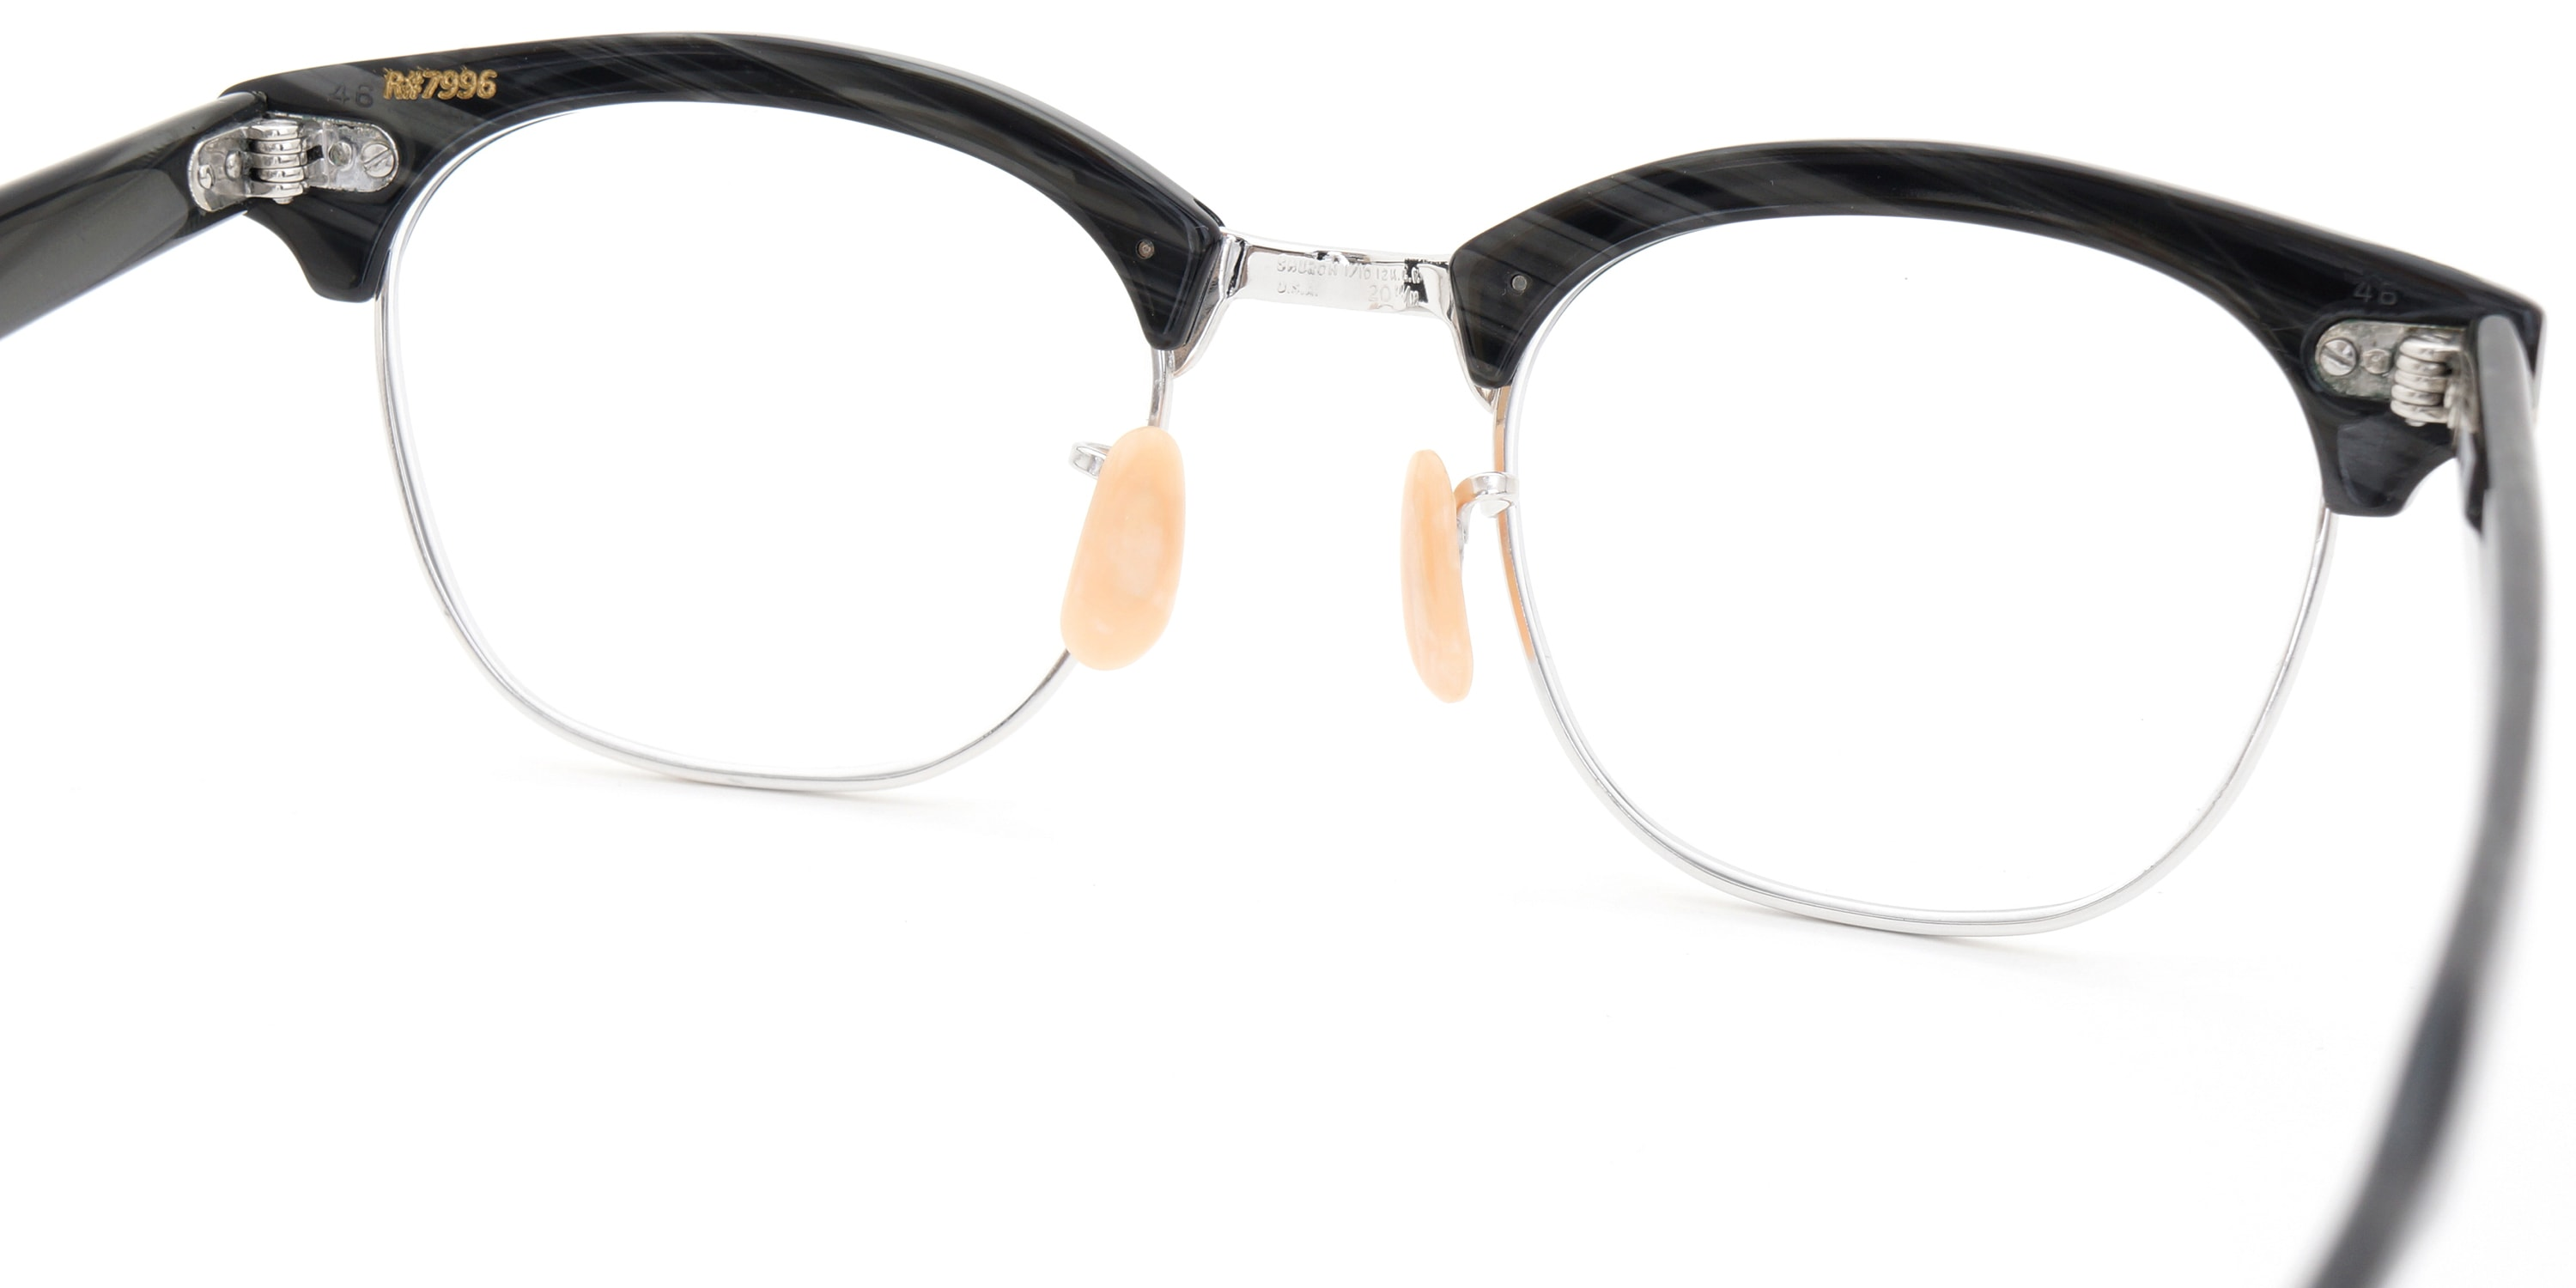 The Spectacle メガネ 1950s-1960s SHURON RONSIR Black-Stone WG 1/10 12KGF 46/20 イメージ9